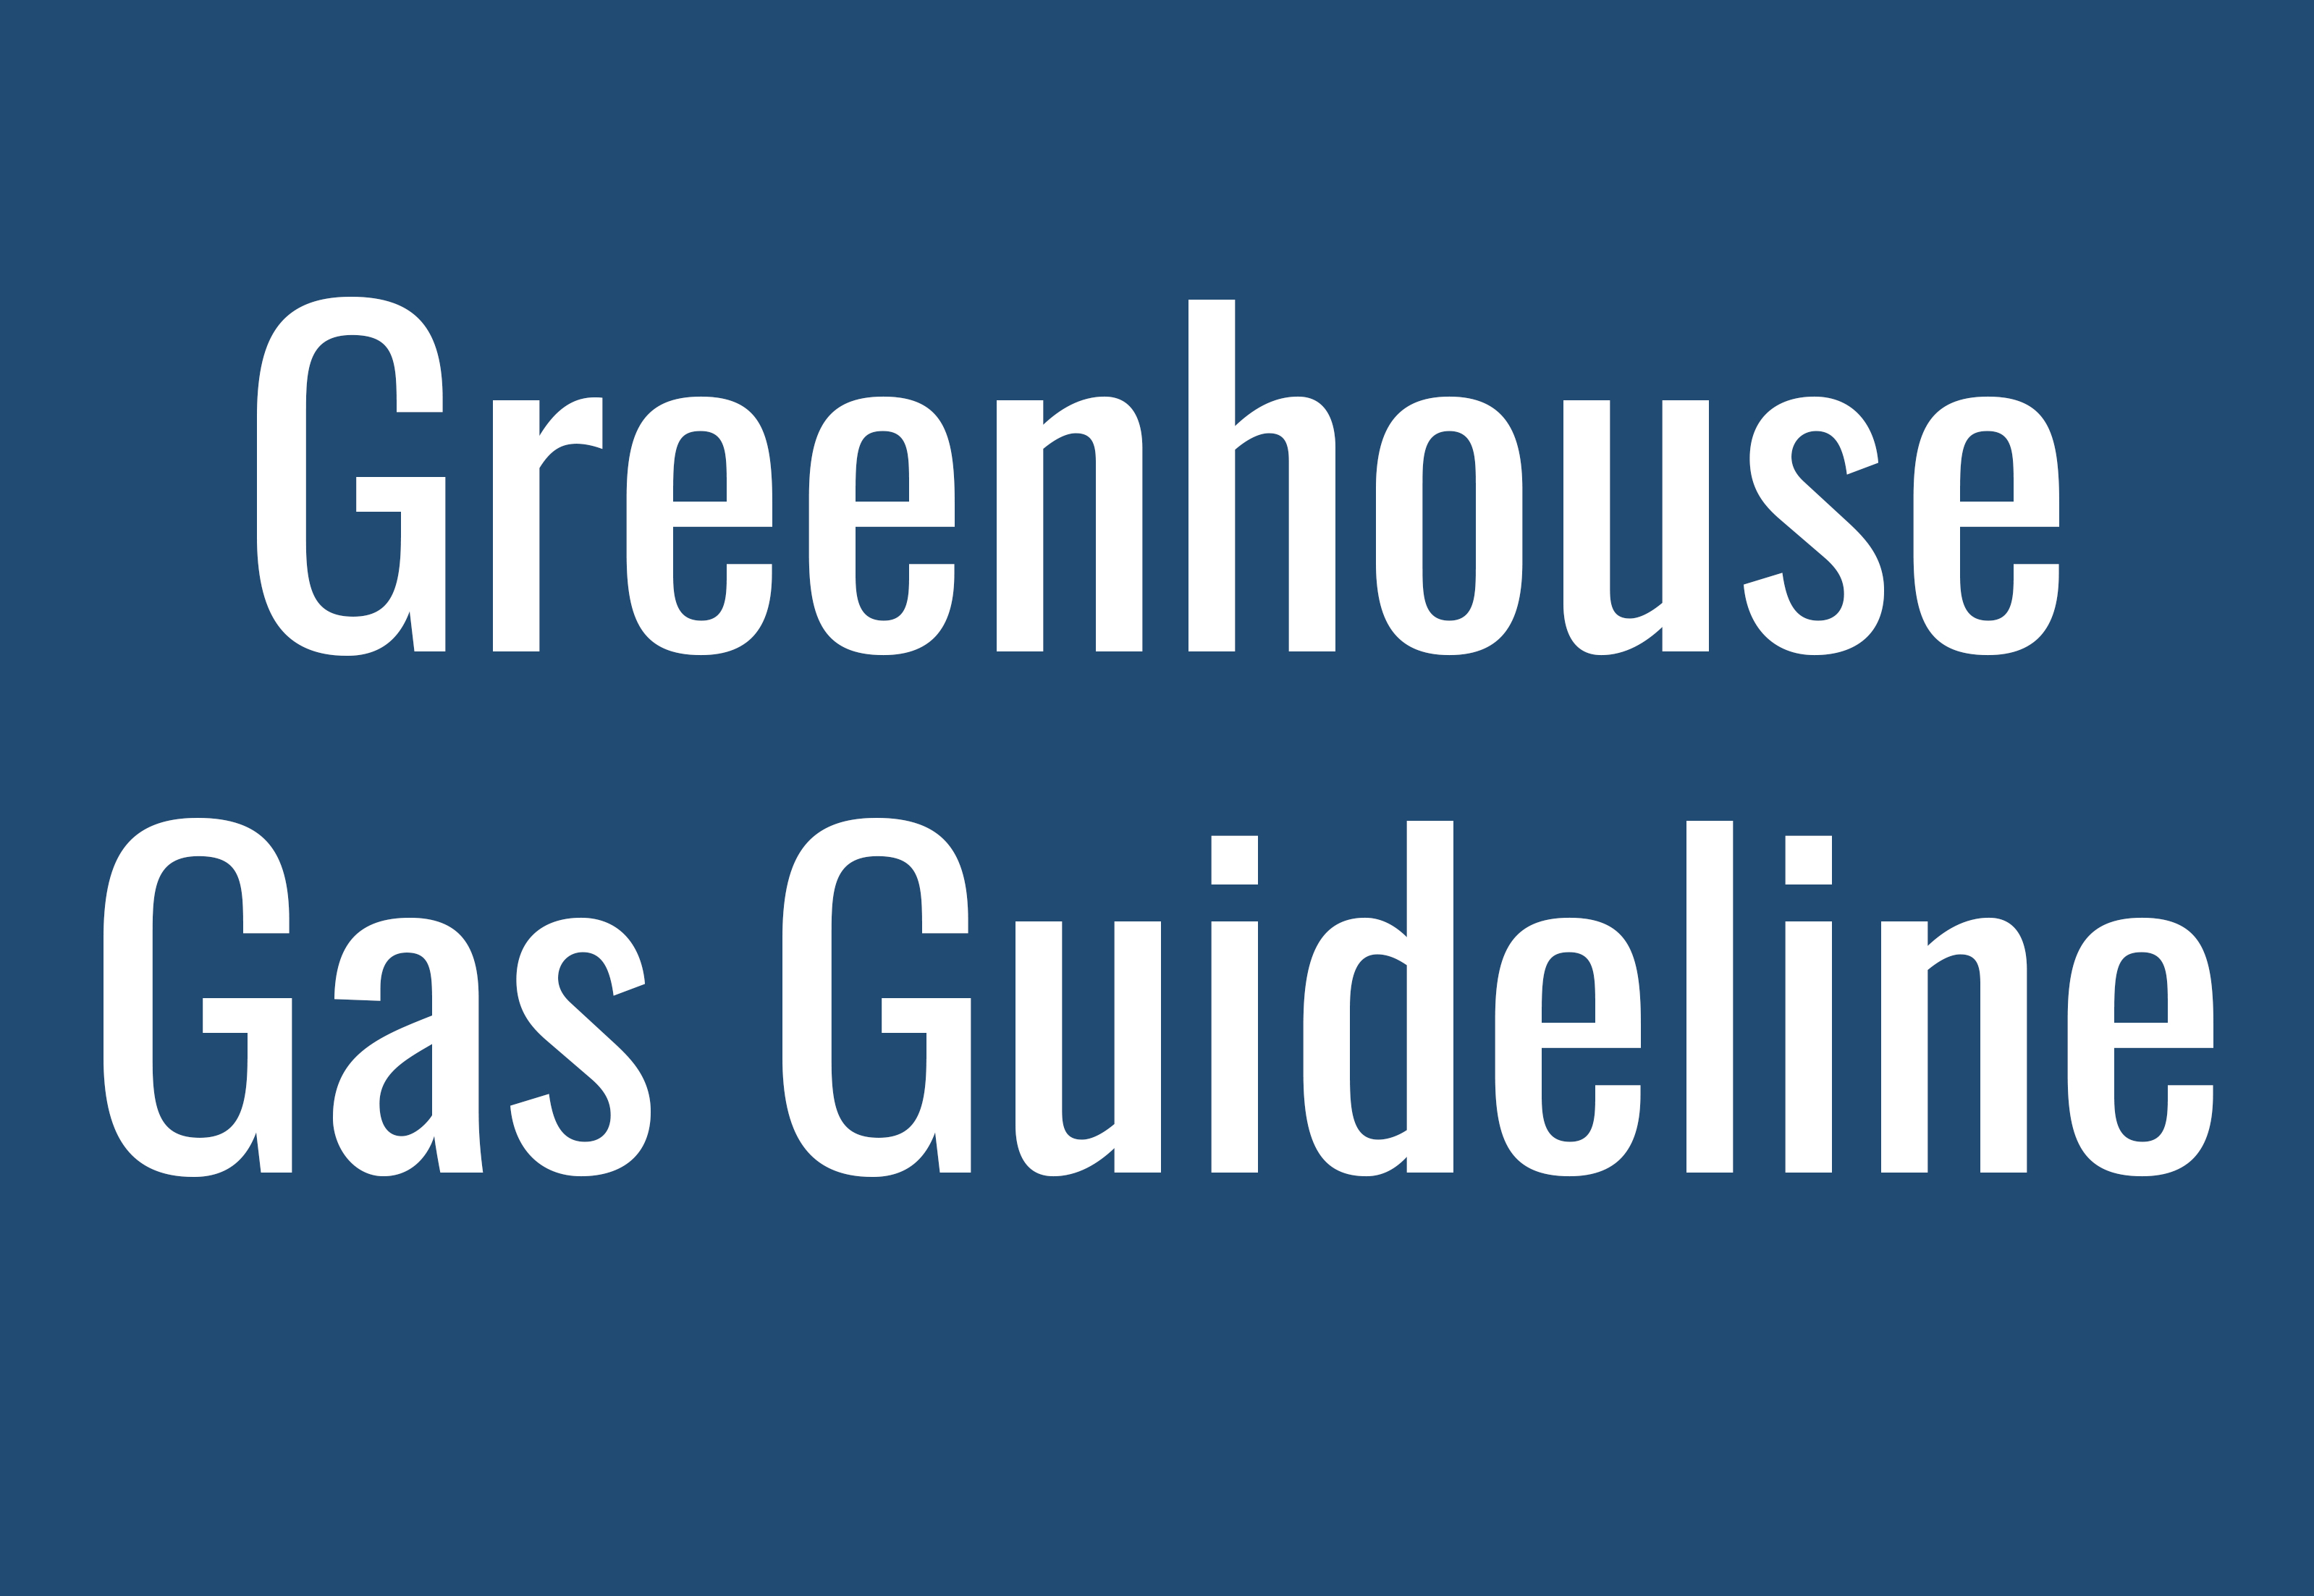 EPA releases greenhouse gas guideline